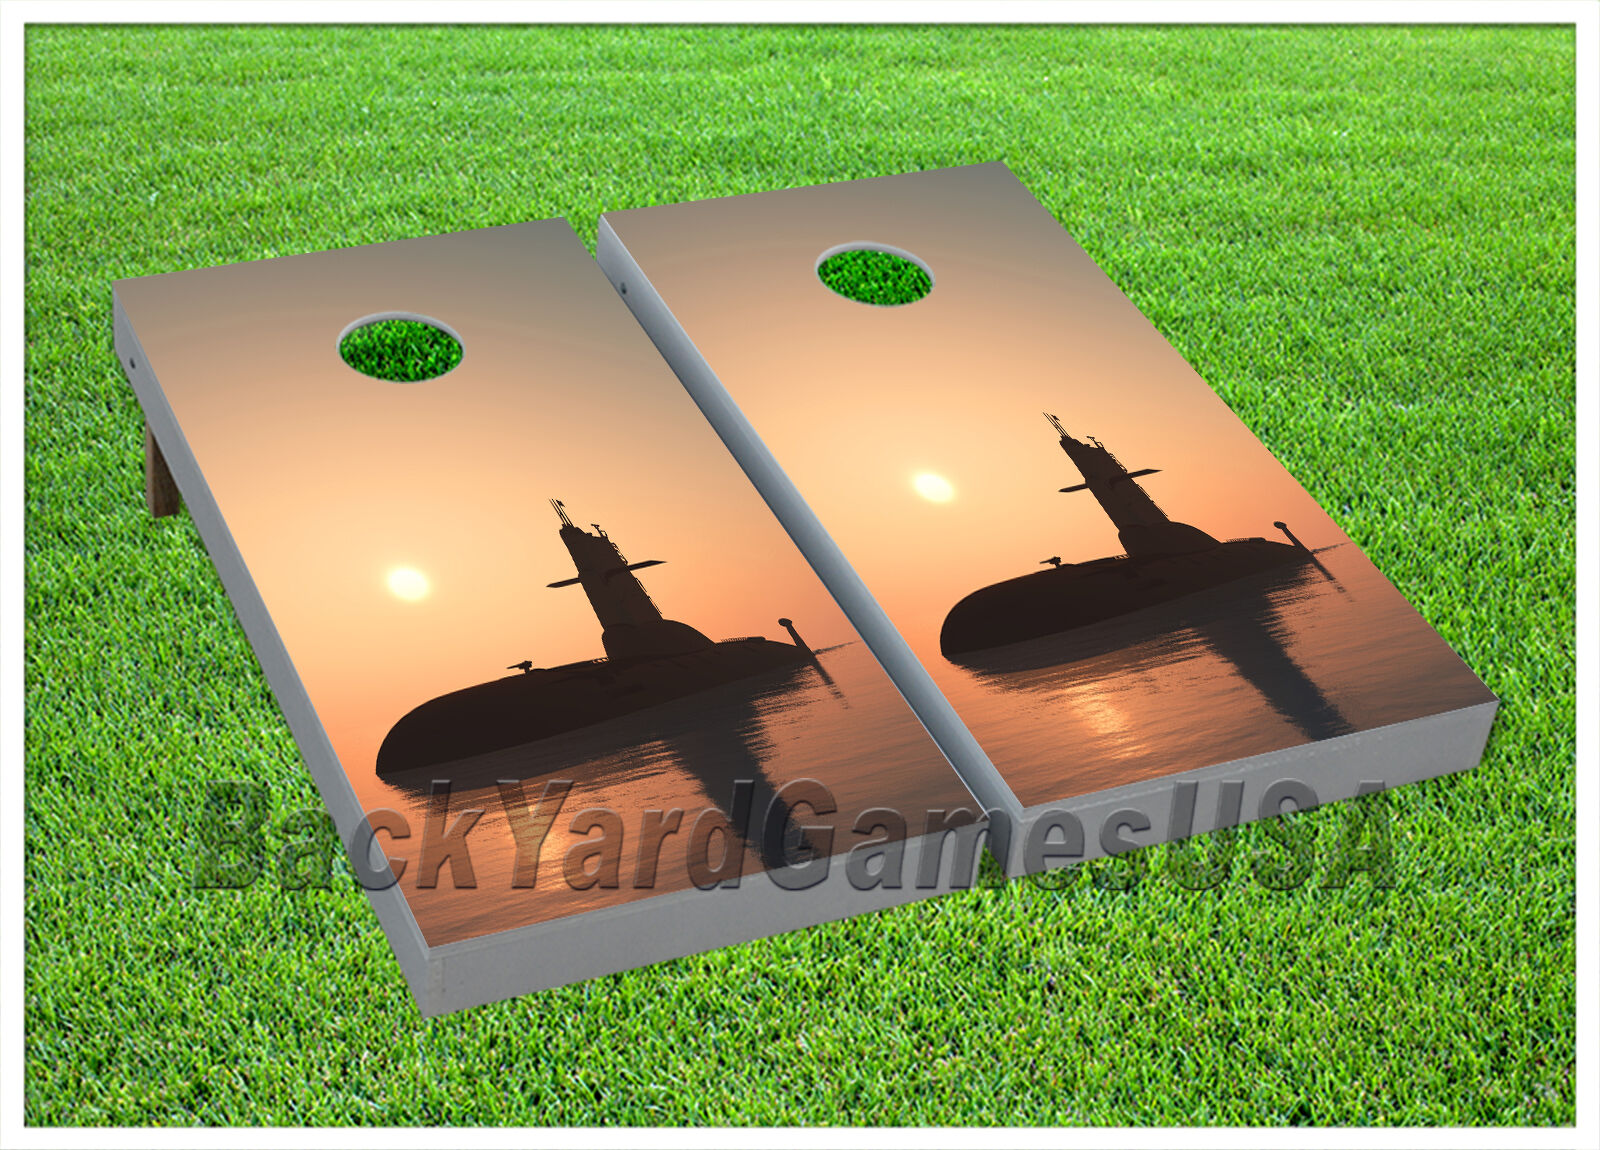 CORNHOLE BEANBAG TOSS GAME  USA Navy Submarine w Bags  Game Boards Set 1062  cheap